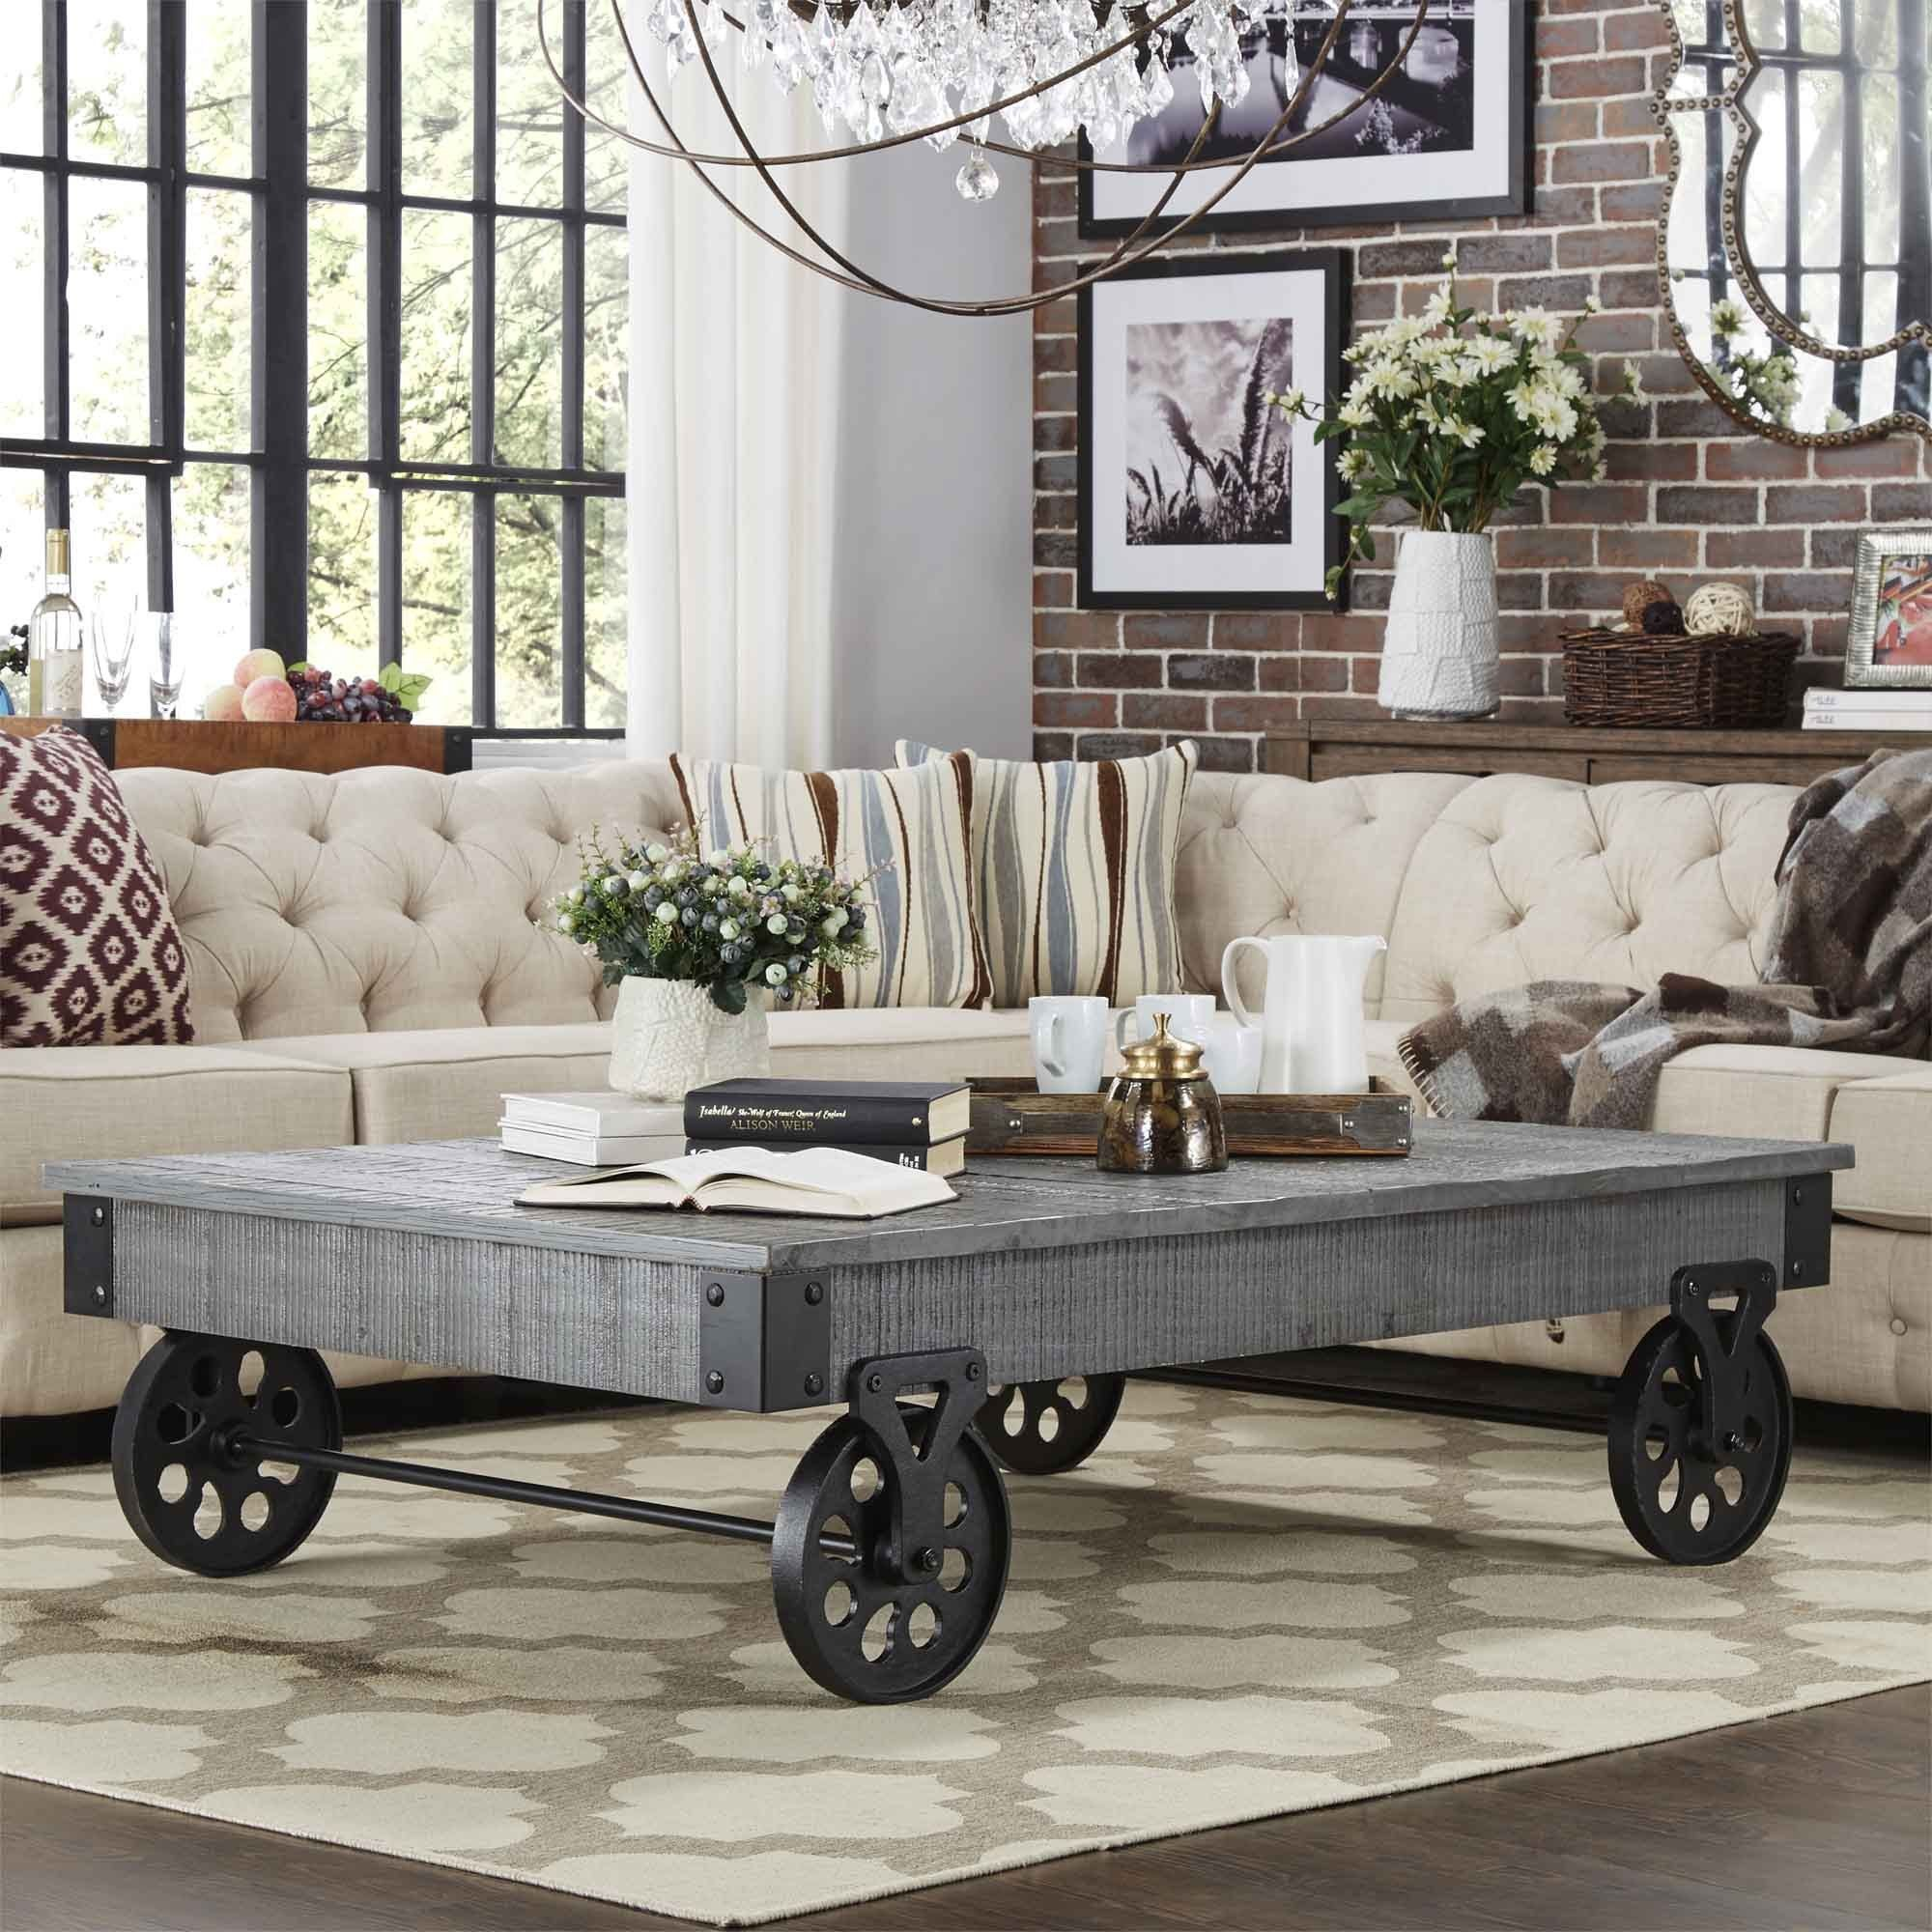 Overstock Com Online Shopping Bedding Furniture Electronics Jewelry Clothing More Rustic Industrial Living Room Industrial Living Room Design Vintage Industrial Decor [ 2000 x 2000 Pixel ]